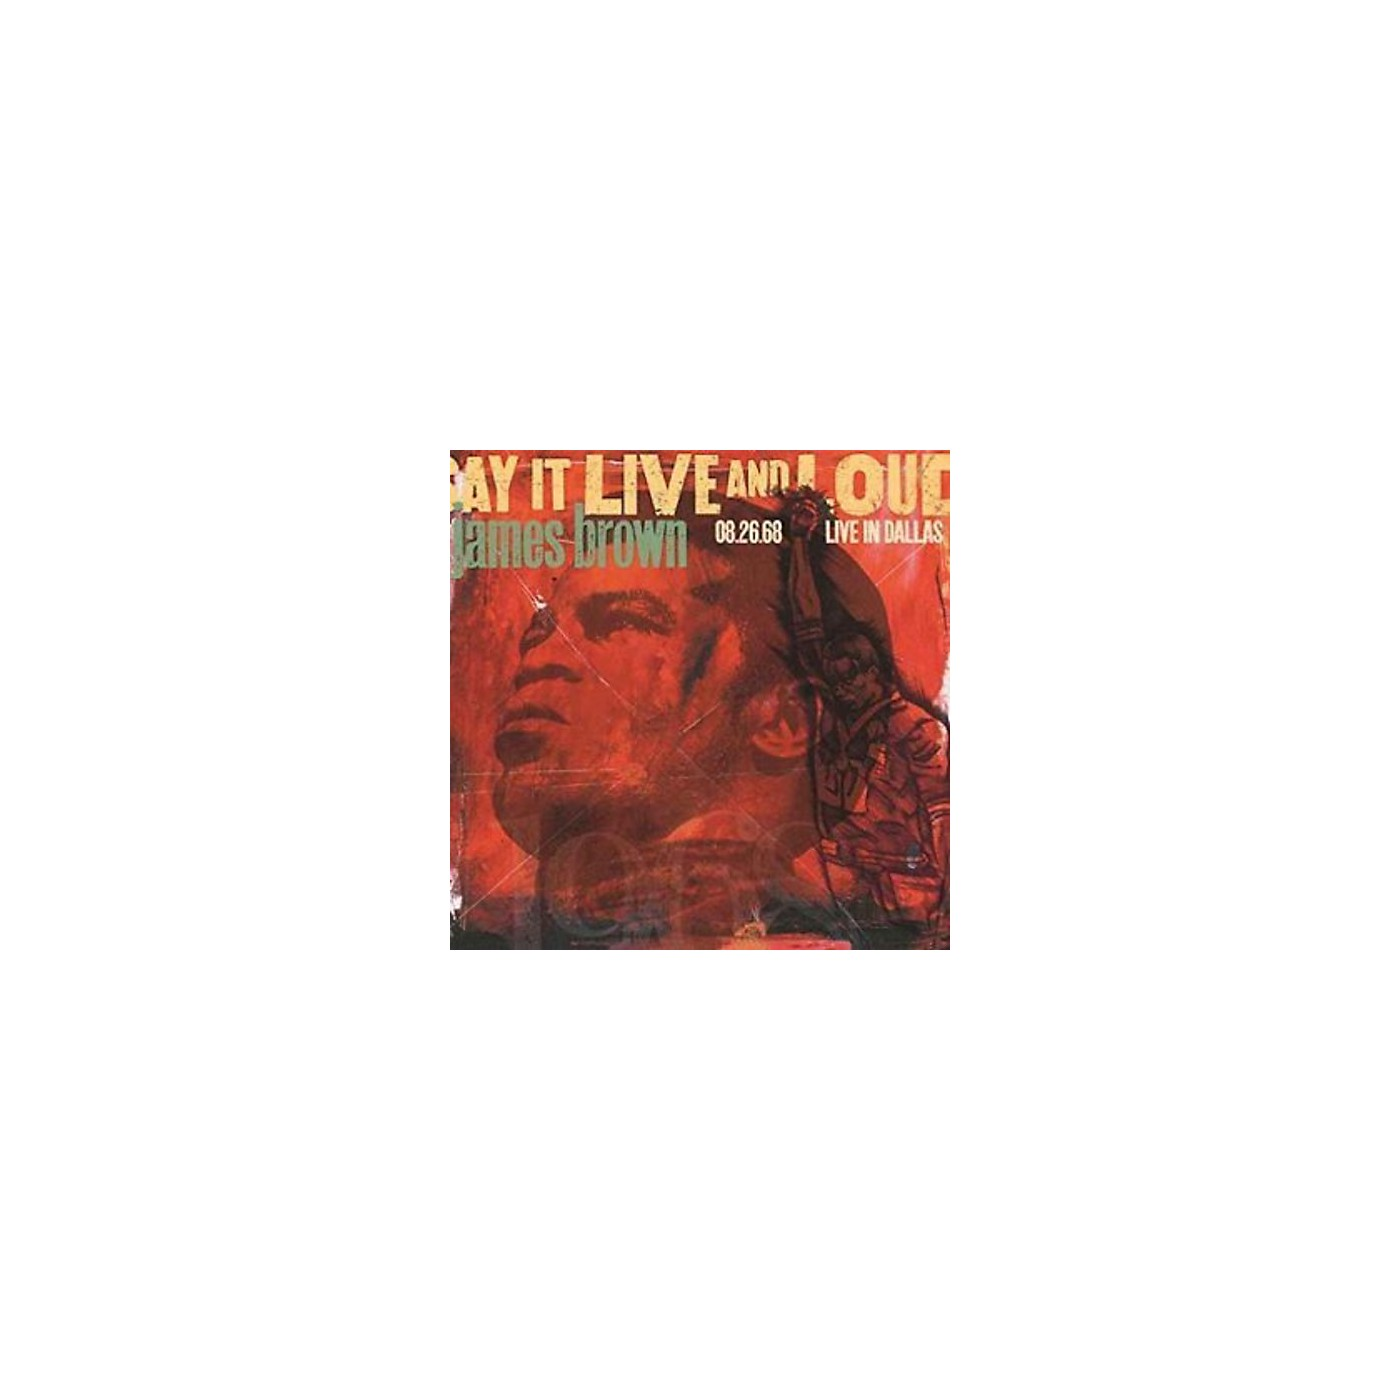 Alliance James Brown - Say It Live And Loud: Live In Dallas 8.26.68 thumbnail